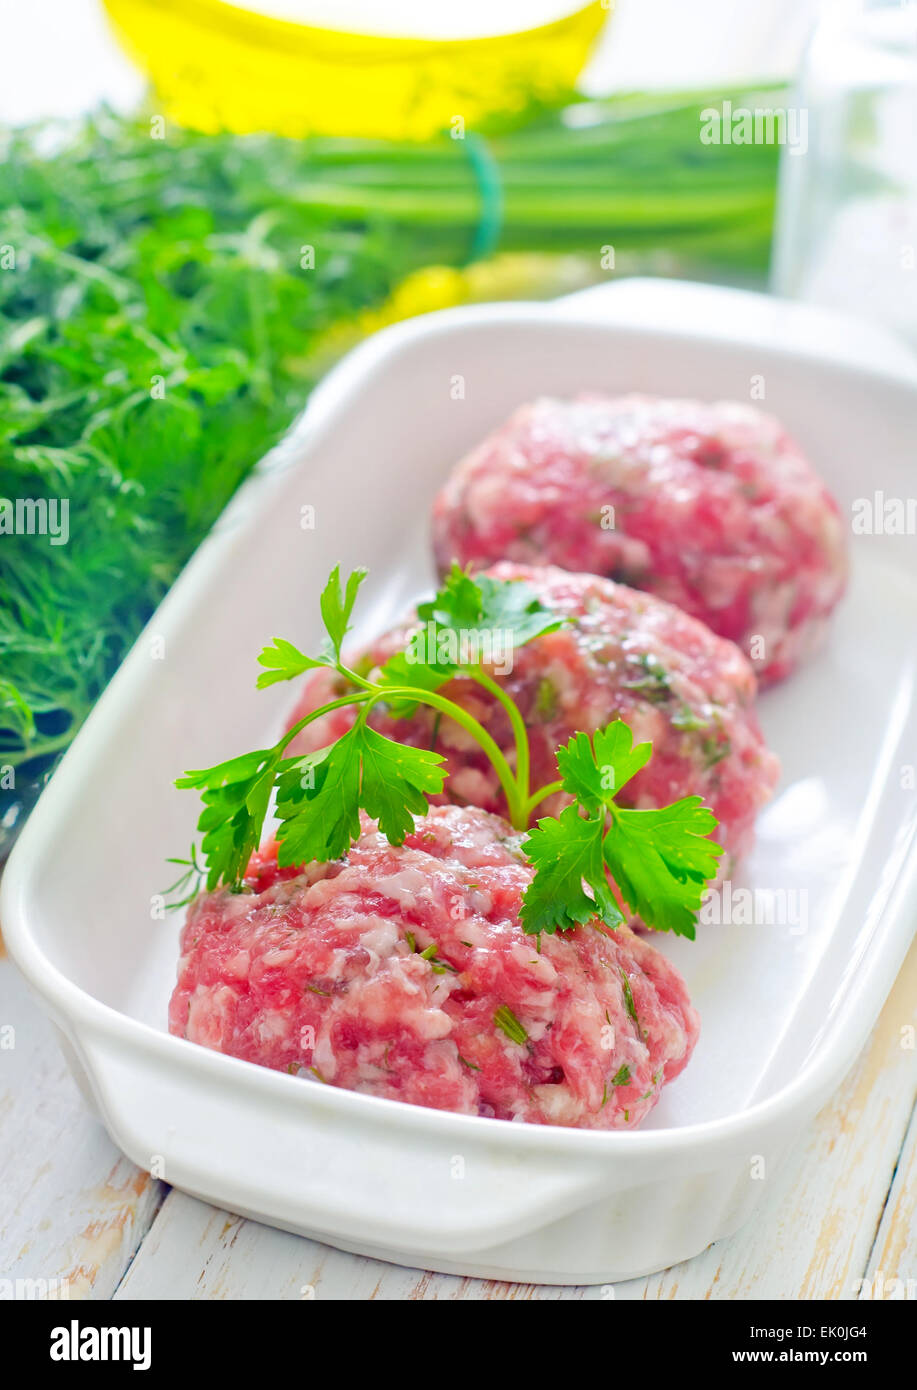 Raw meat balls in the white bowl - Stock Image